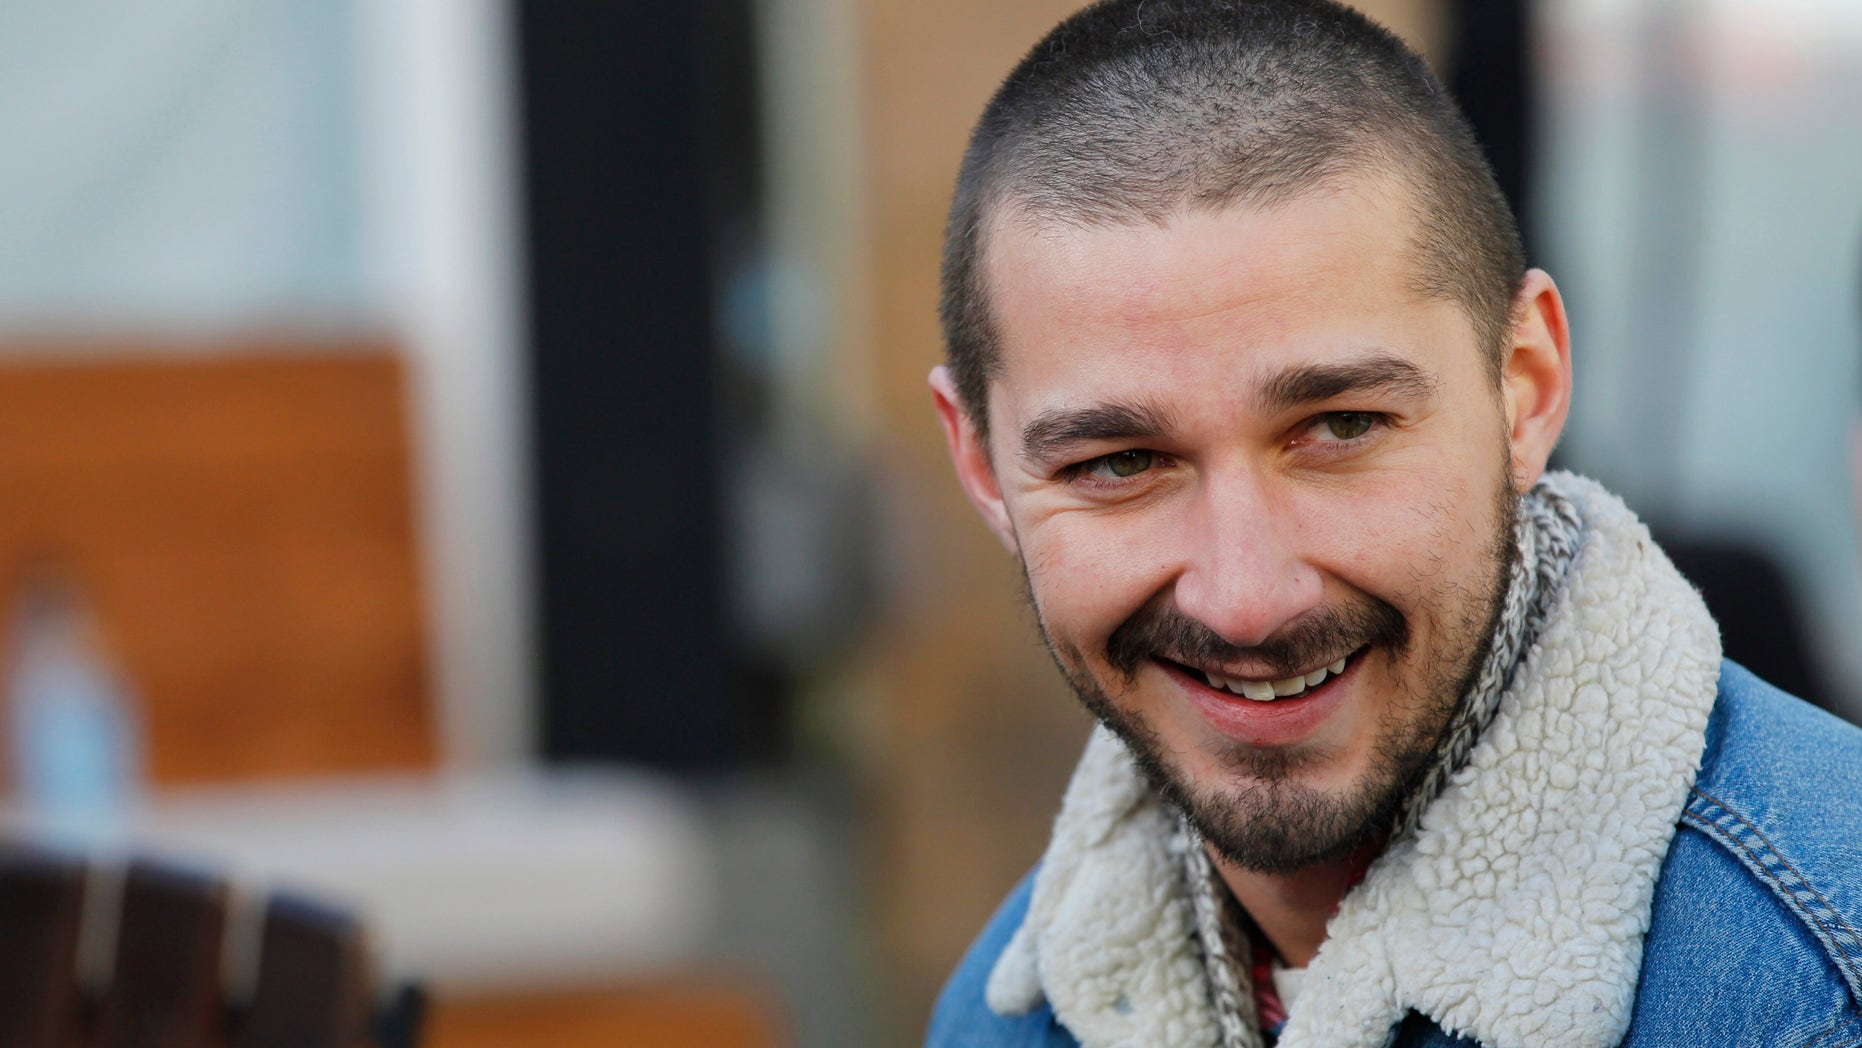 """Actor Shia LaBeouf from the movie """"The Necessary Death of Charlie Countryman"""" smiles during the Sundance Film Festival in Park City, Utah January 22, 2013. REUTERS/Mario Anzuoni  (UNITED STATES - Tags: ENTERTAINMENT HEADSHOT) - RTR3CTF5"""